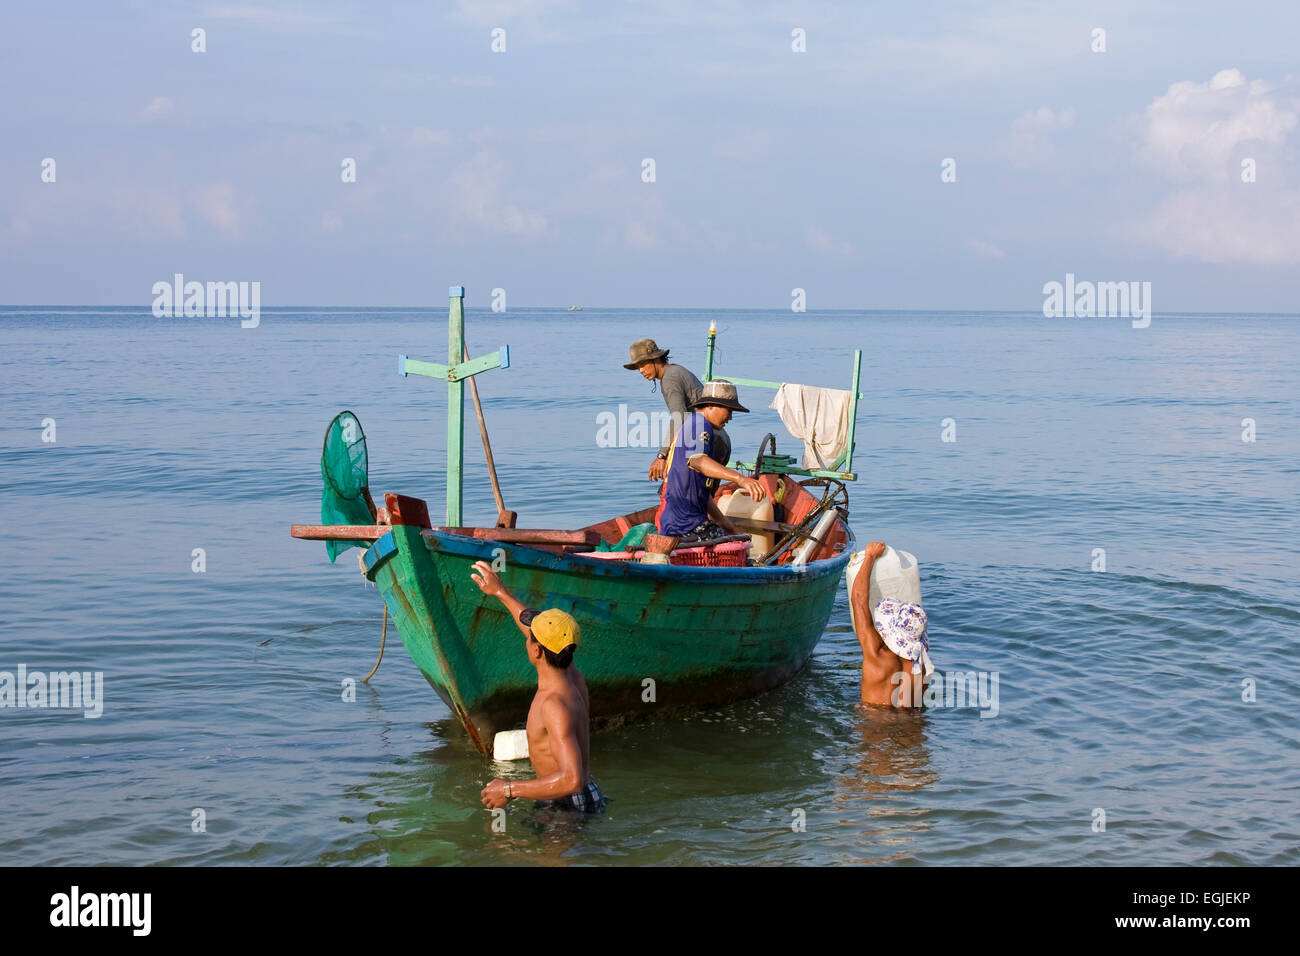 Brings his A fisherman corresponding composite network to fishing from the sea, in, Phu Quoc, Vietnam - Stock Image